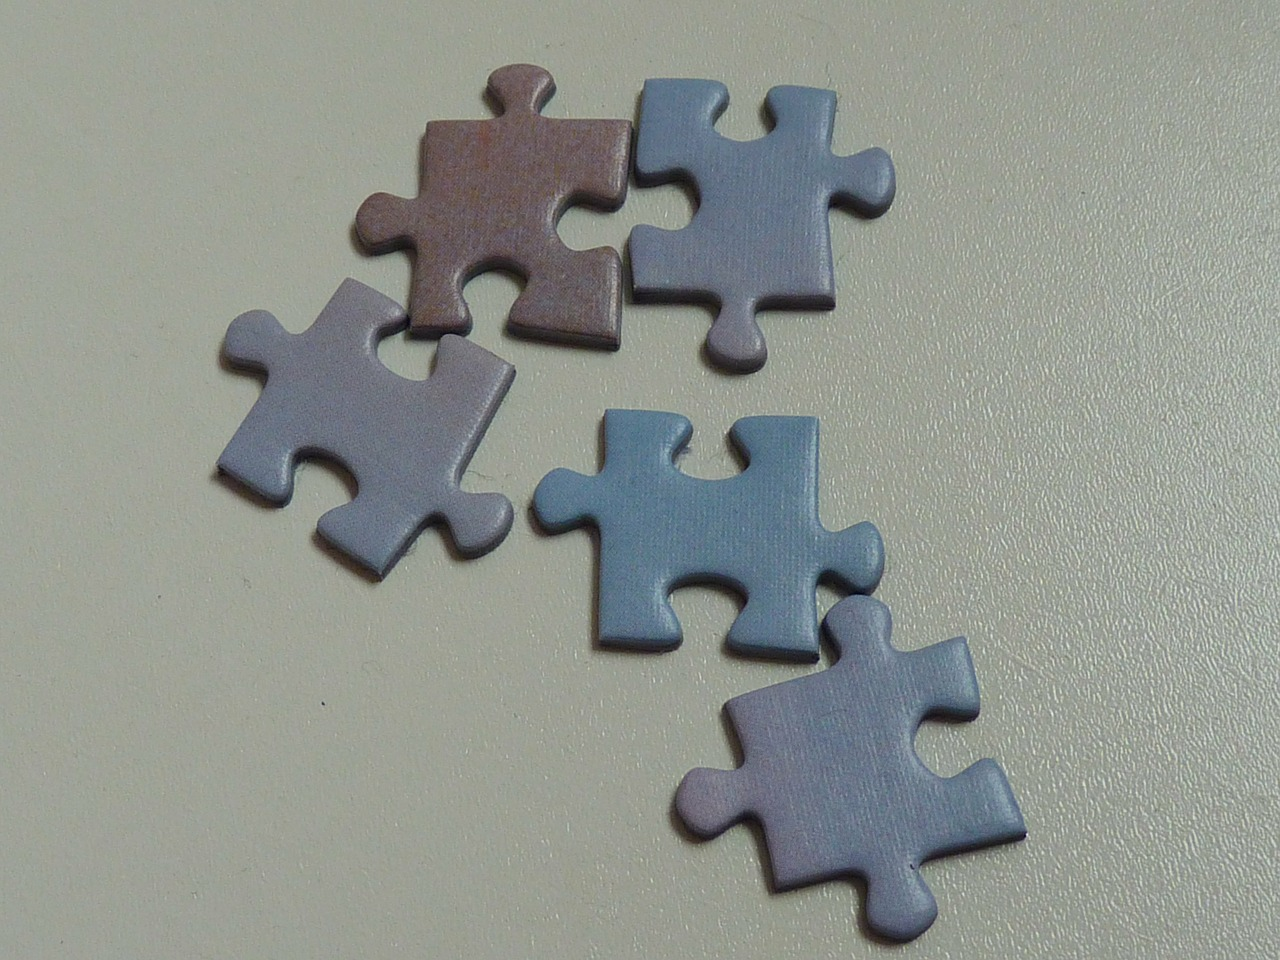 puzzle puzzle piece play free photo